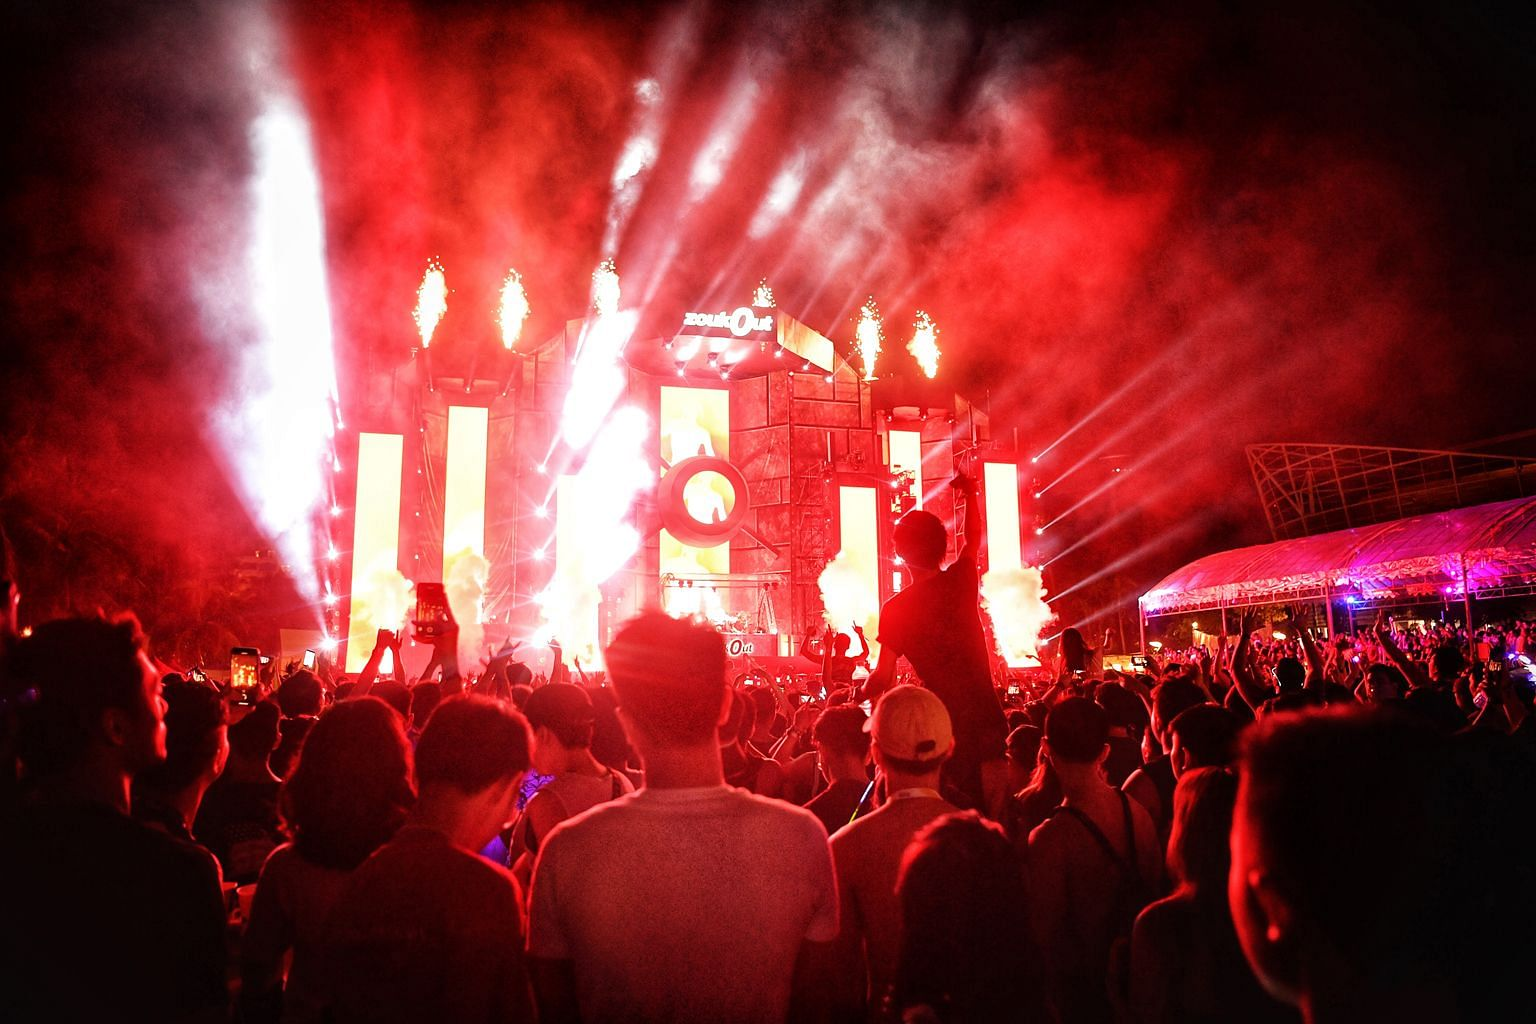 Last year's edition of ZoukOut drew just 20,000 attendees.